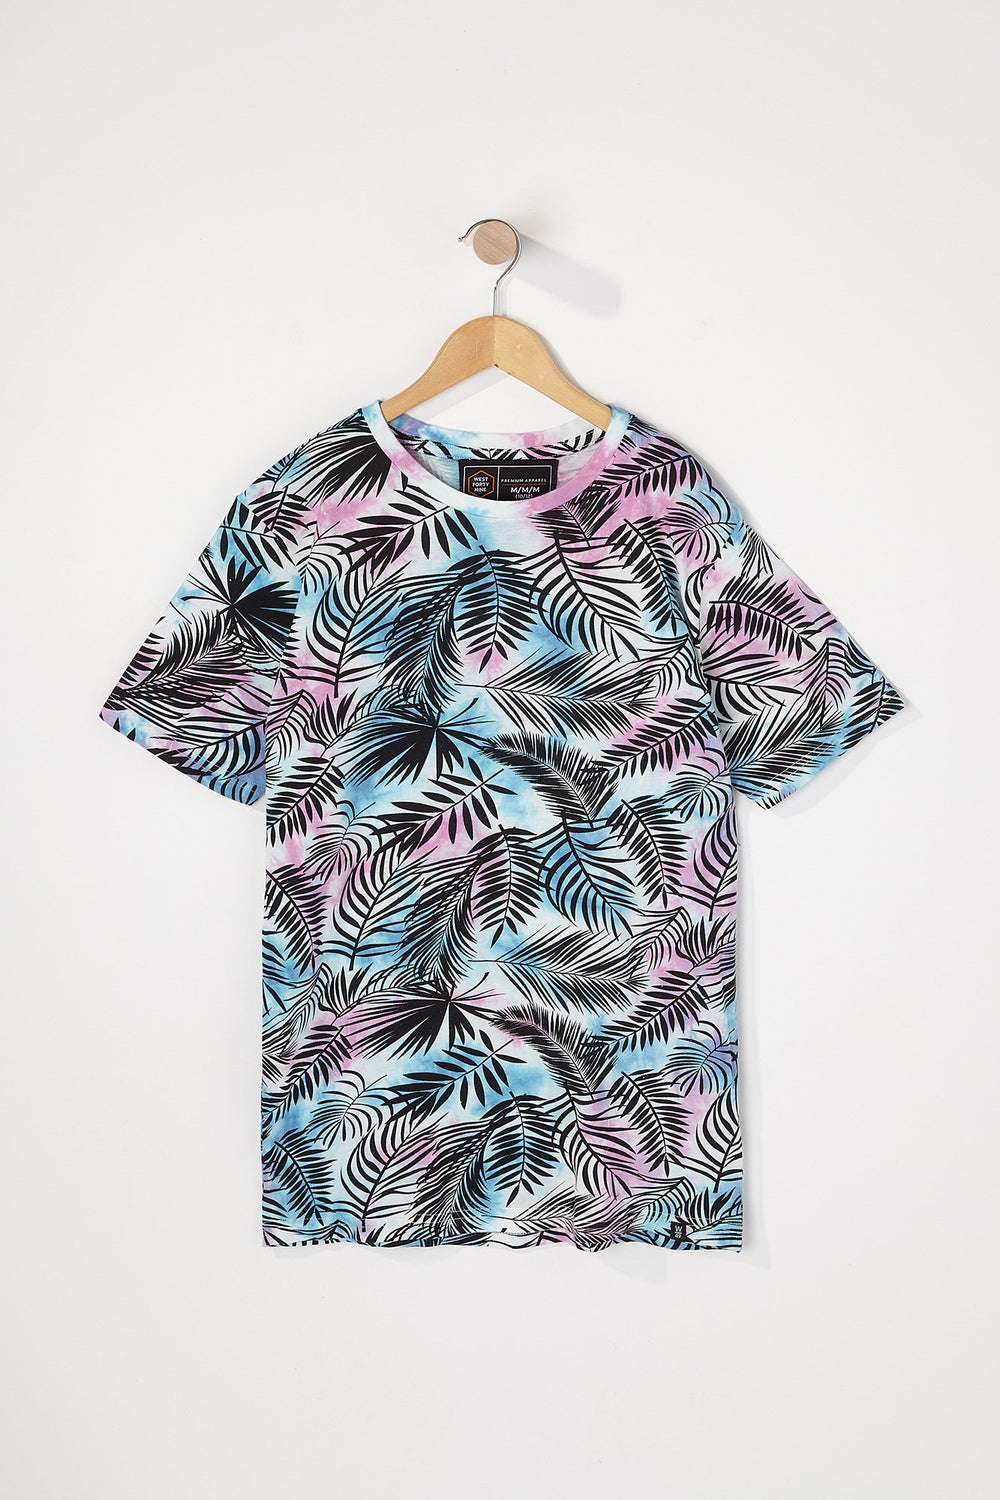 West49 Boys Tie-Dye Palm Tree T-Shirt Pink